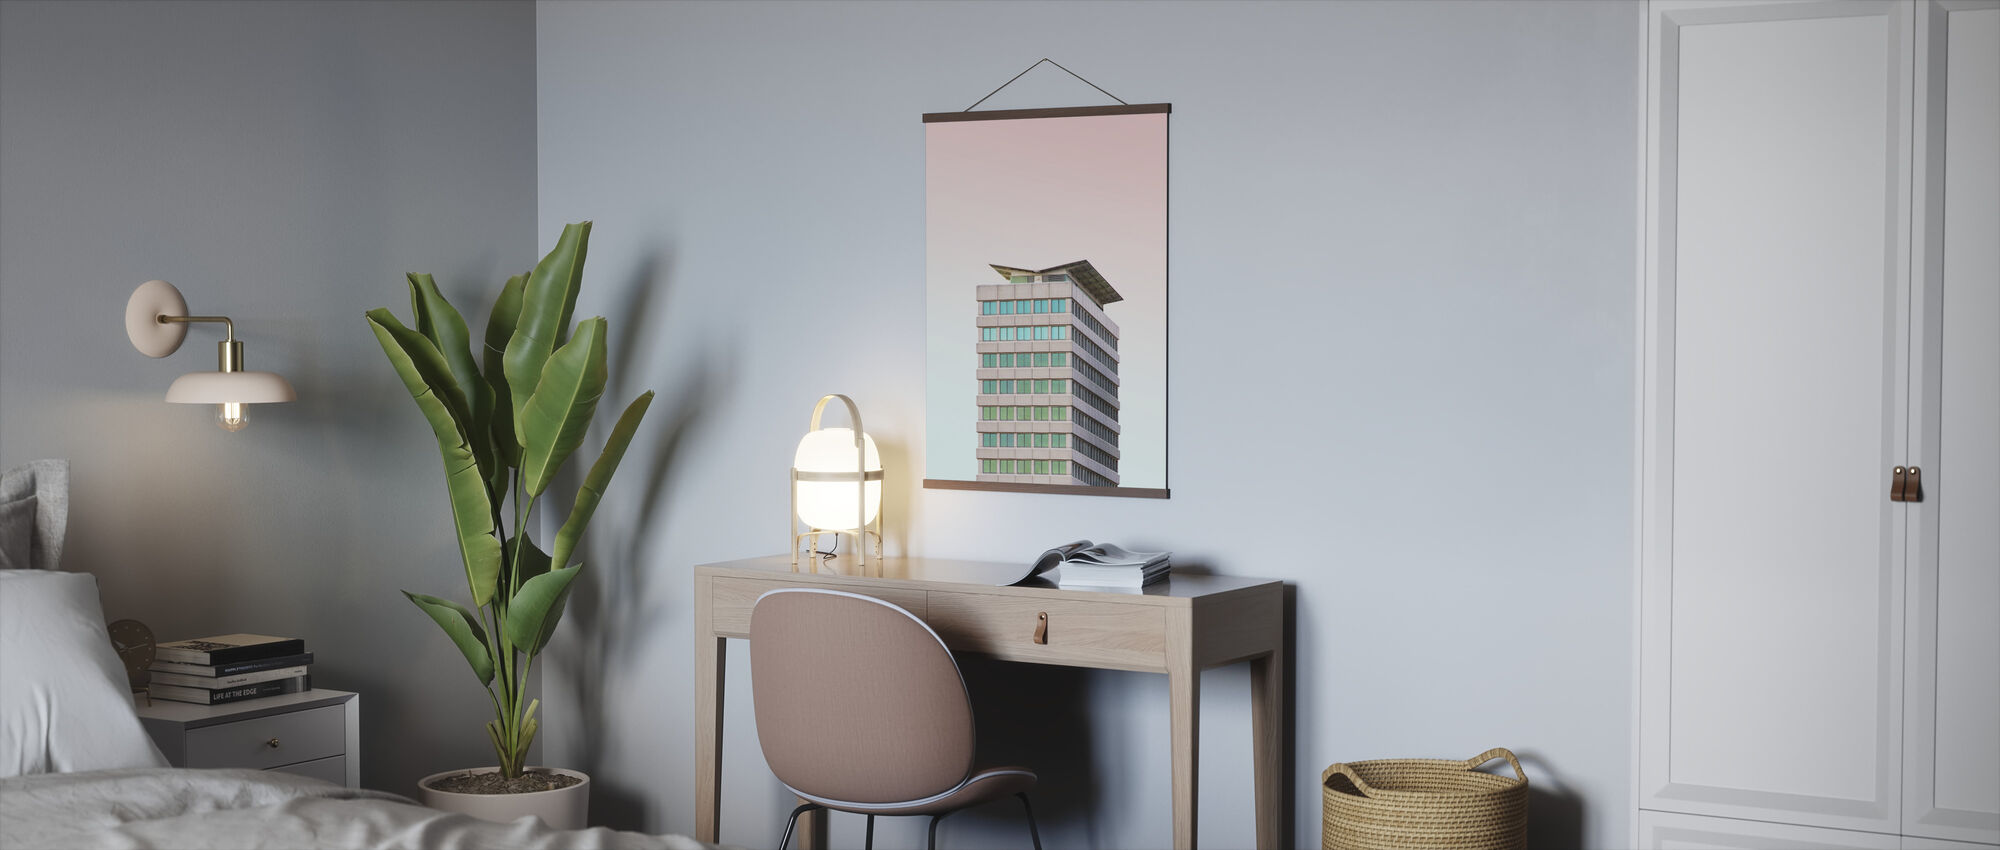 Tower Block Building - Poster - Office